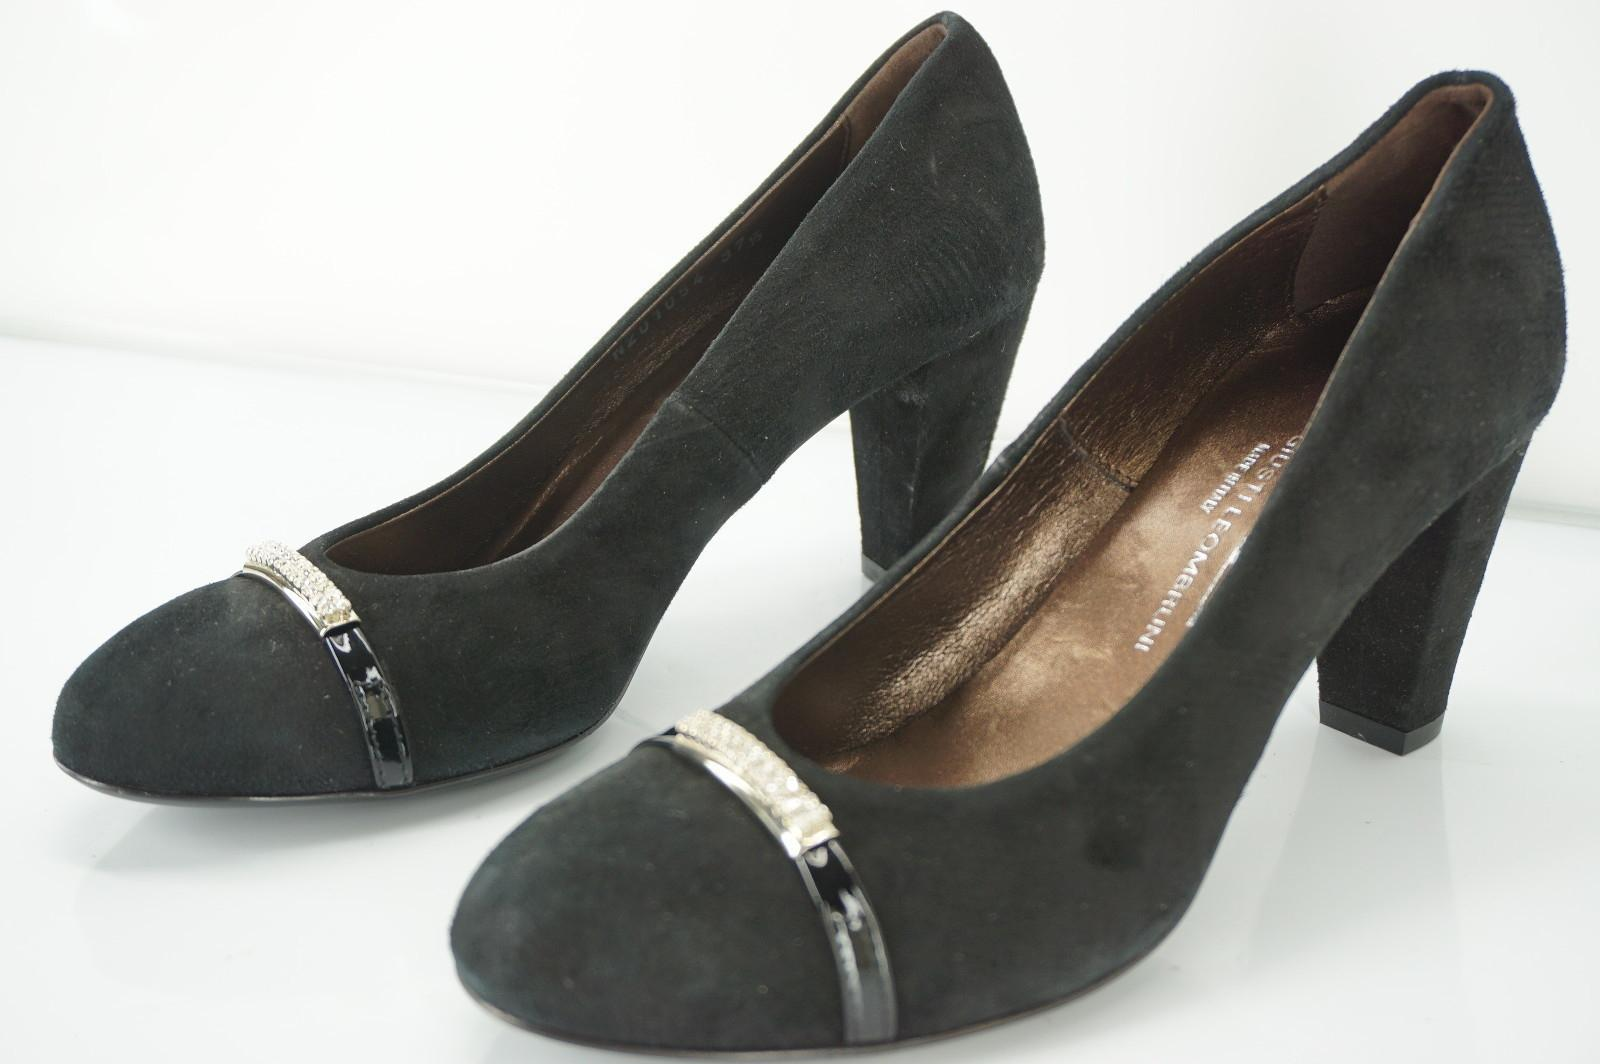 AGL Suede Round-Toe Pumps free shipping best place Cheapest online cheap sale countdown package oIIyPwNQv